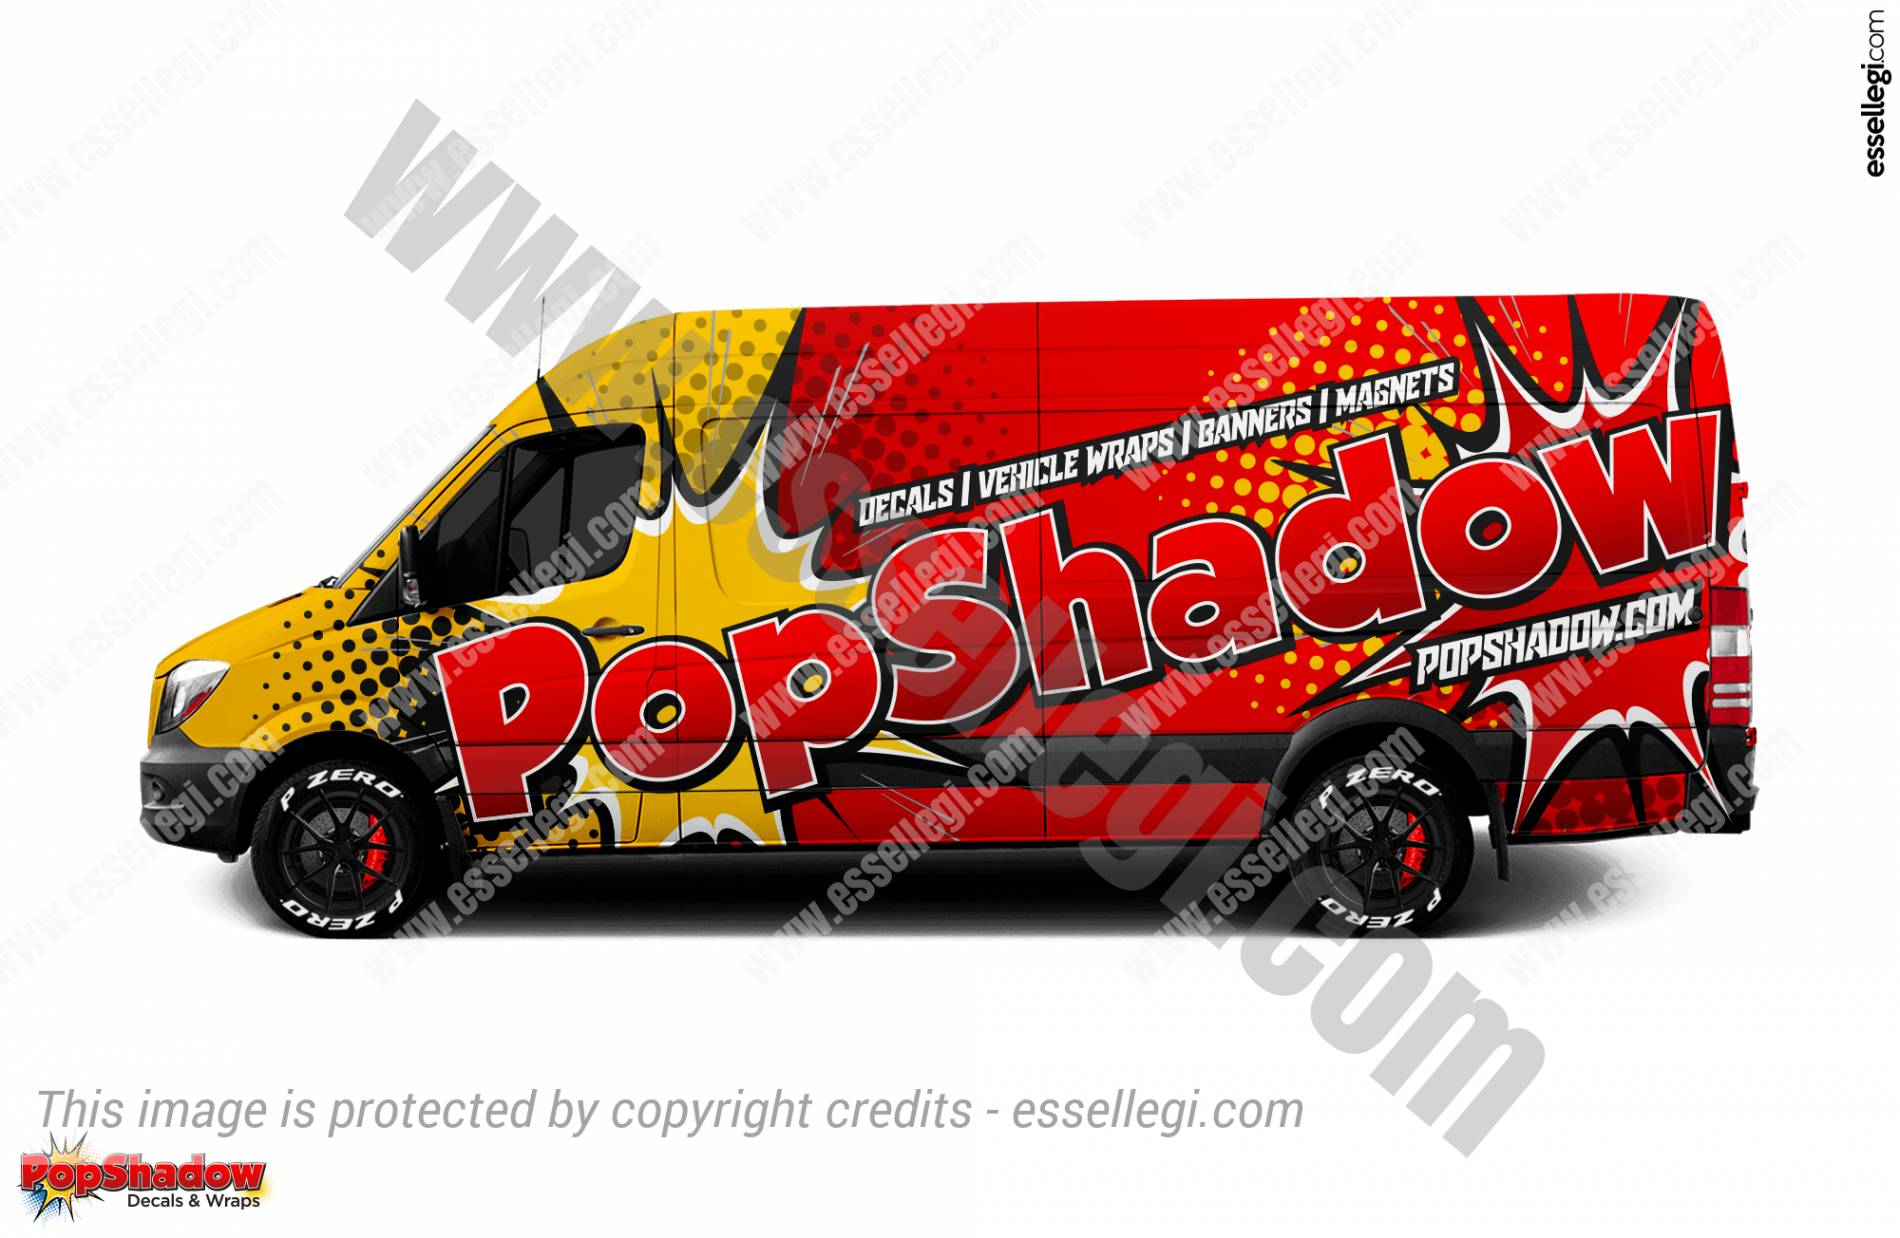 POP SHADOW | VAN WRAP DESIGN 🇺🇸